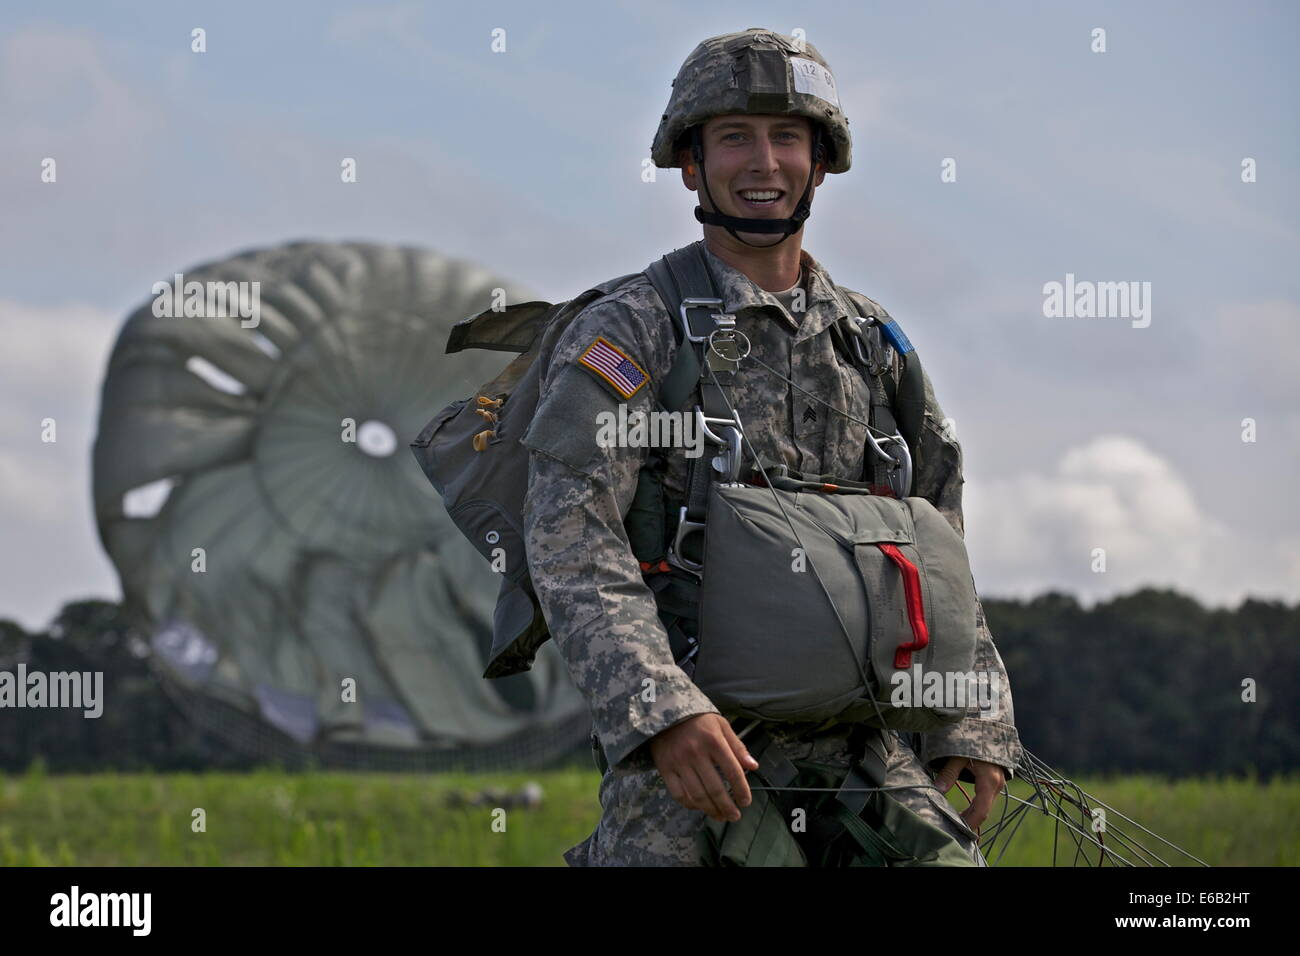 U.S. Army Sgt. Robert Hull, assigned to Joint Force Headquarters, Georgia Army National Guard, smiles after landing - Stock Image